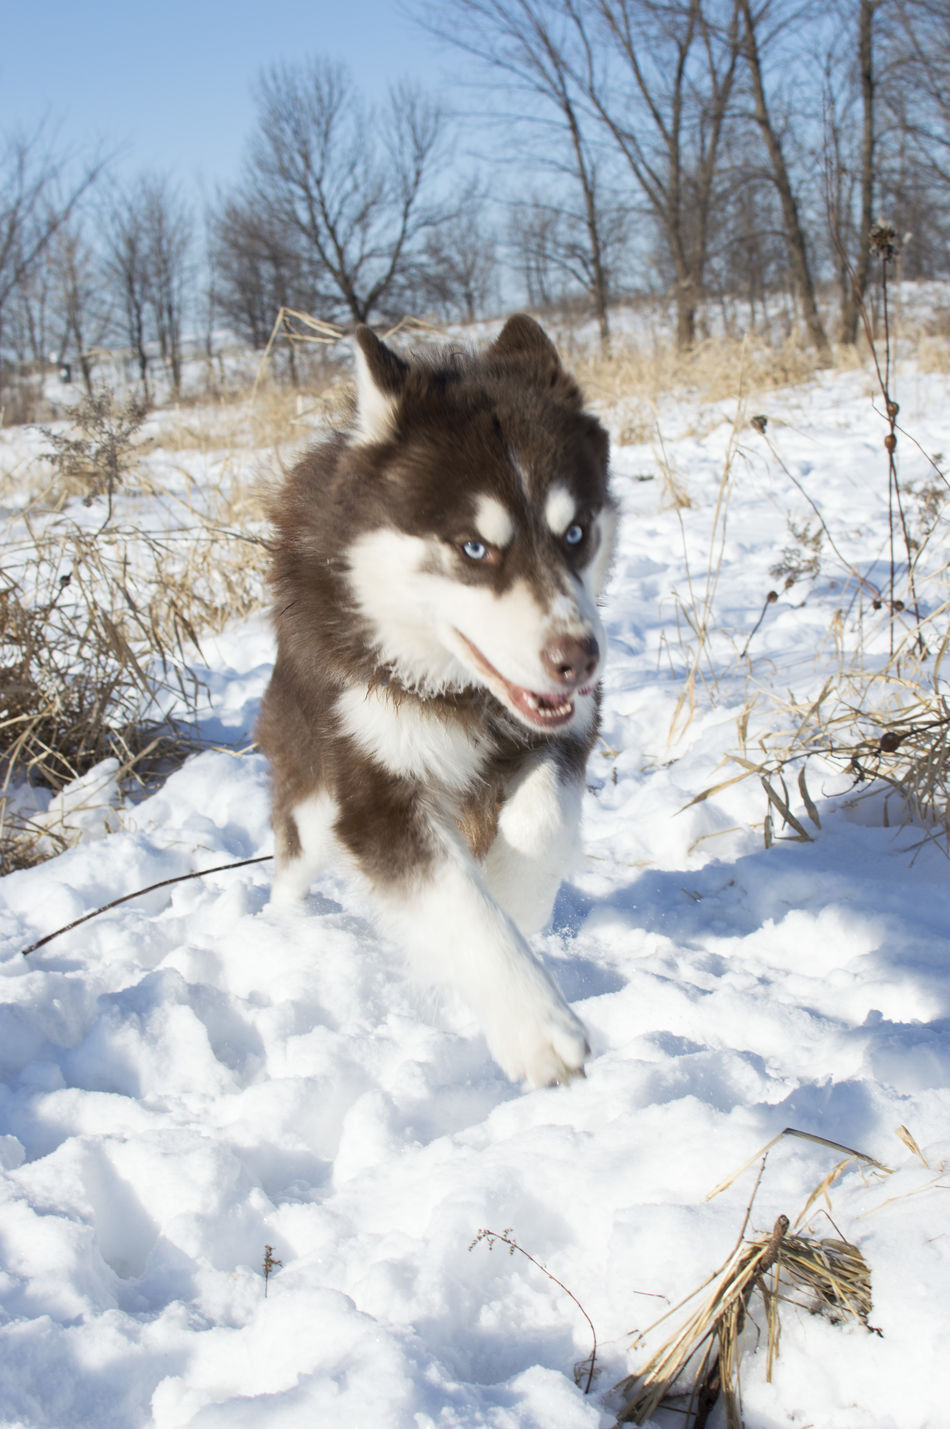 Animal Themes Bare Tree Beauty In Nature Cold Temperature Day Field Frozen Husky Mammal Minnesota Mn Nature No People One Animal Outdoors Portrait Siberian Husky Snow Snowing Tree Weather White Color Winter Minnesota Nature Pets